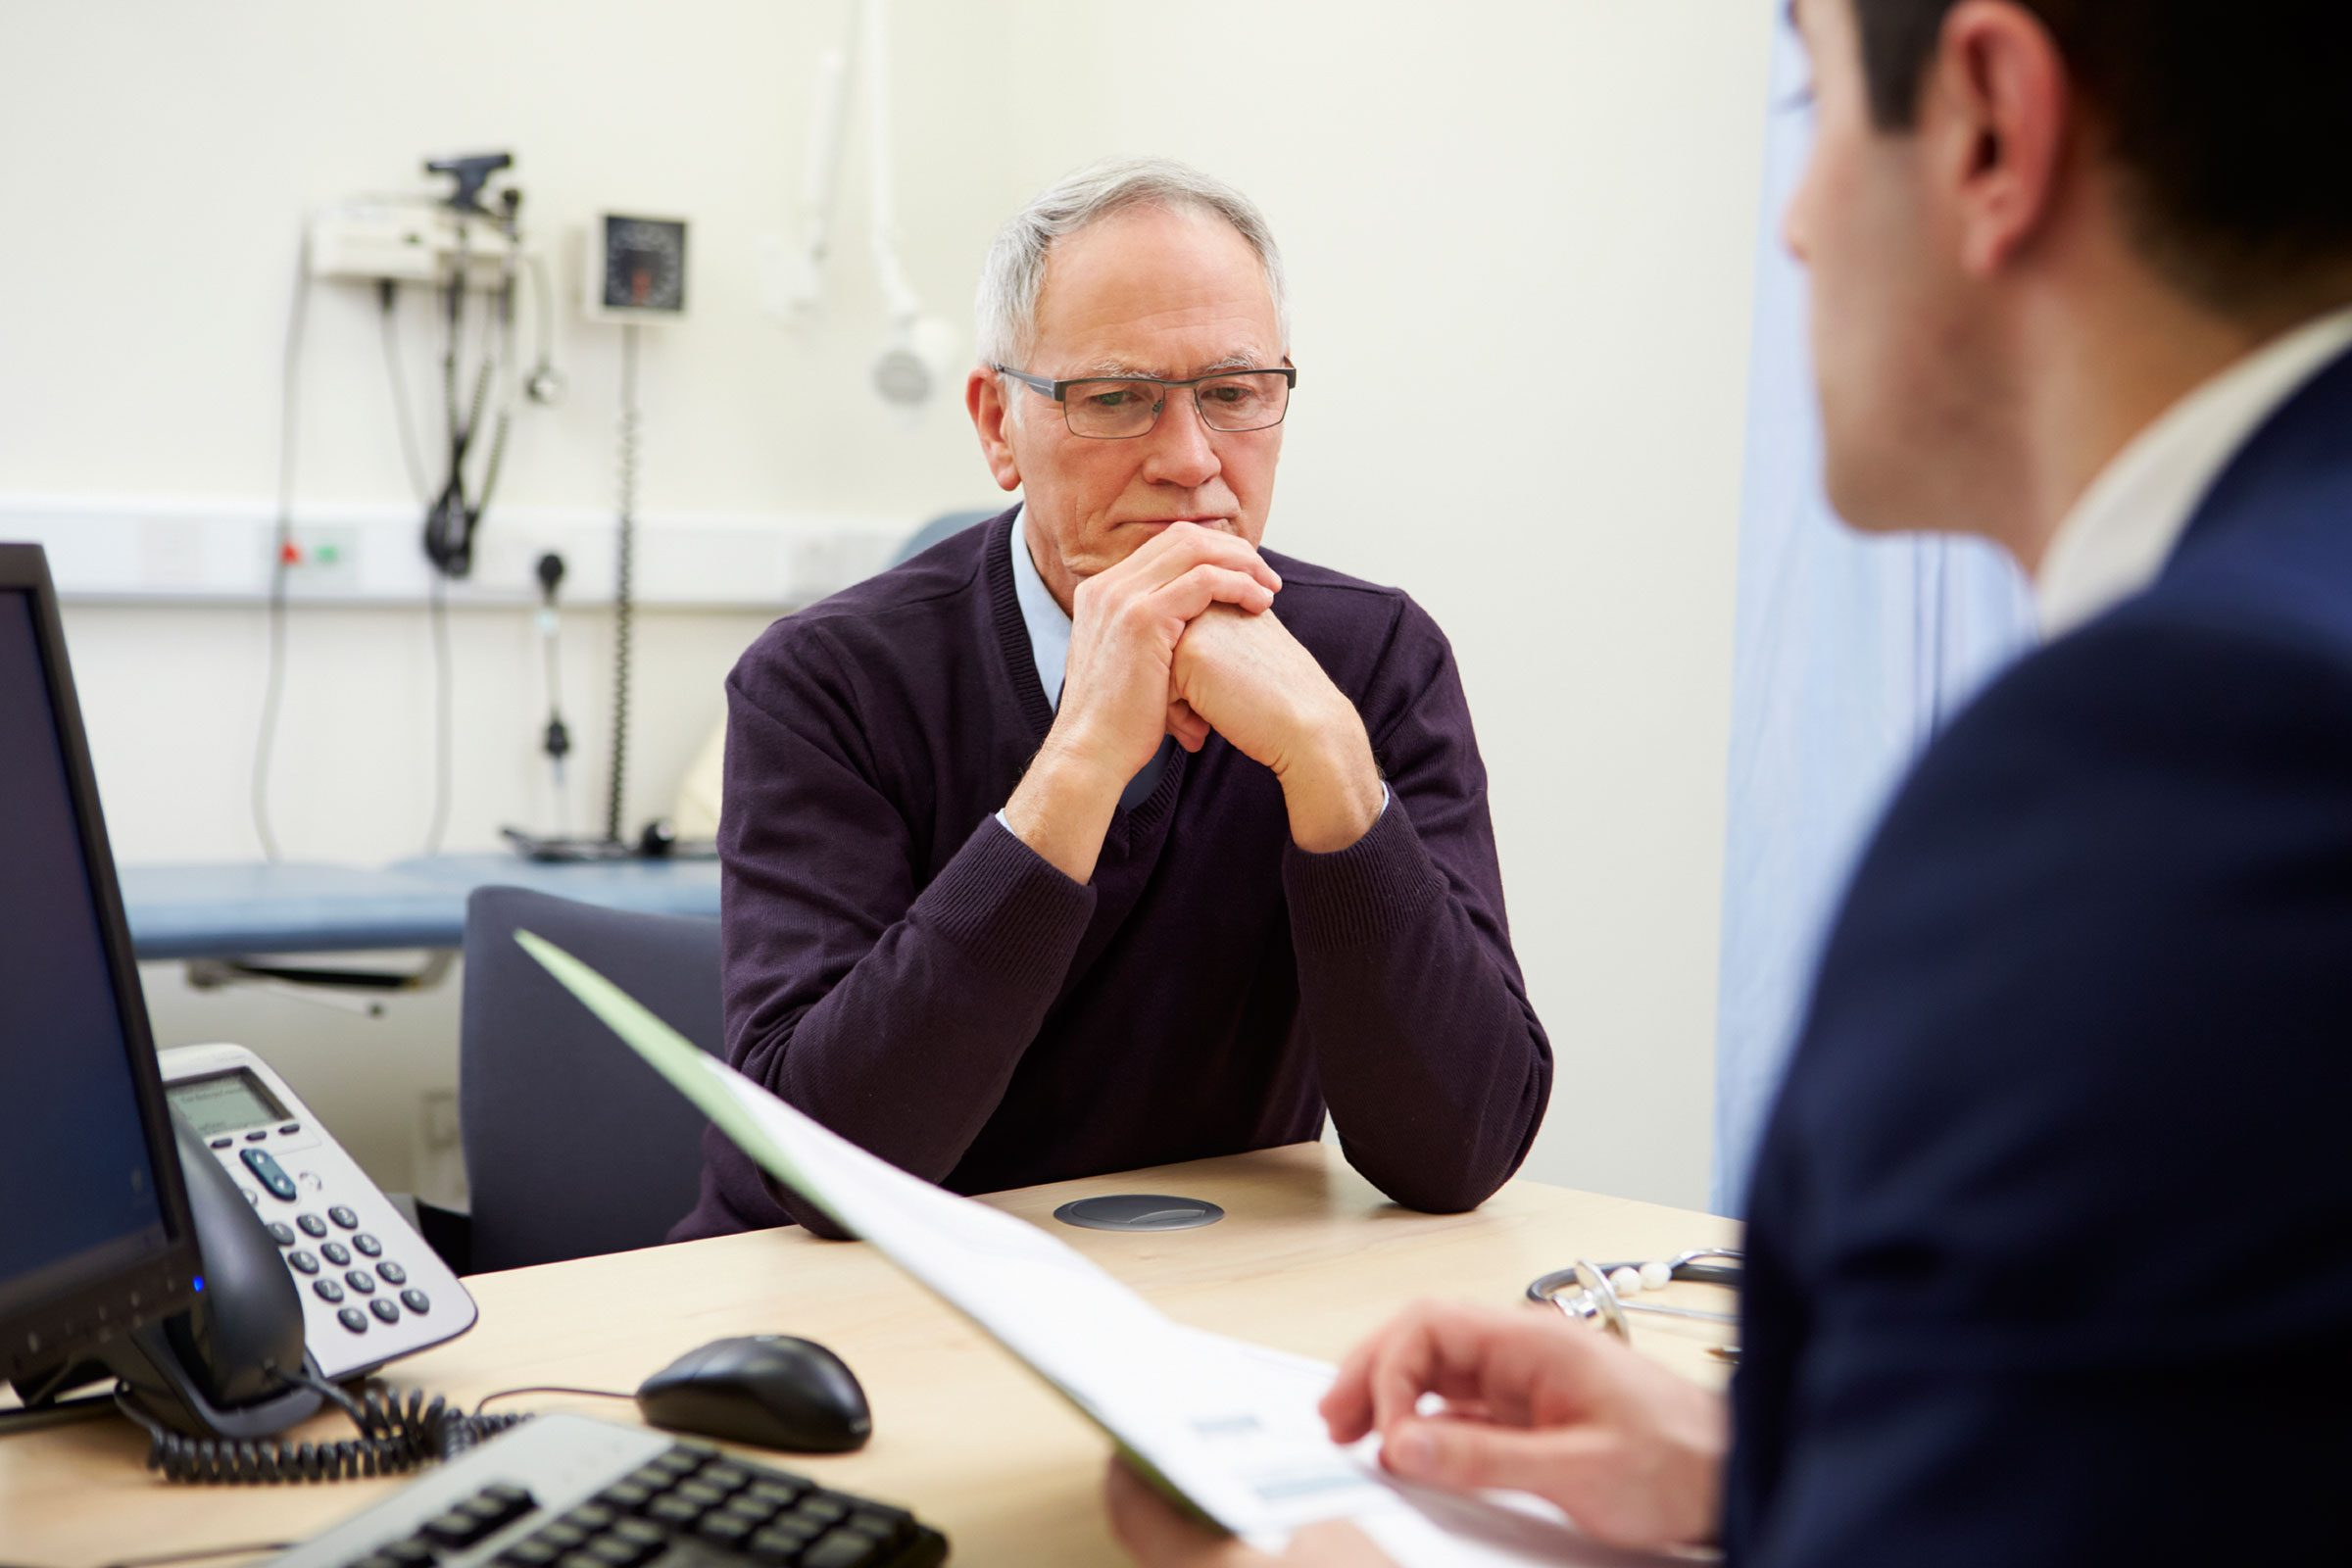 healthcare worker talking to patient at desk